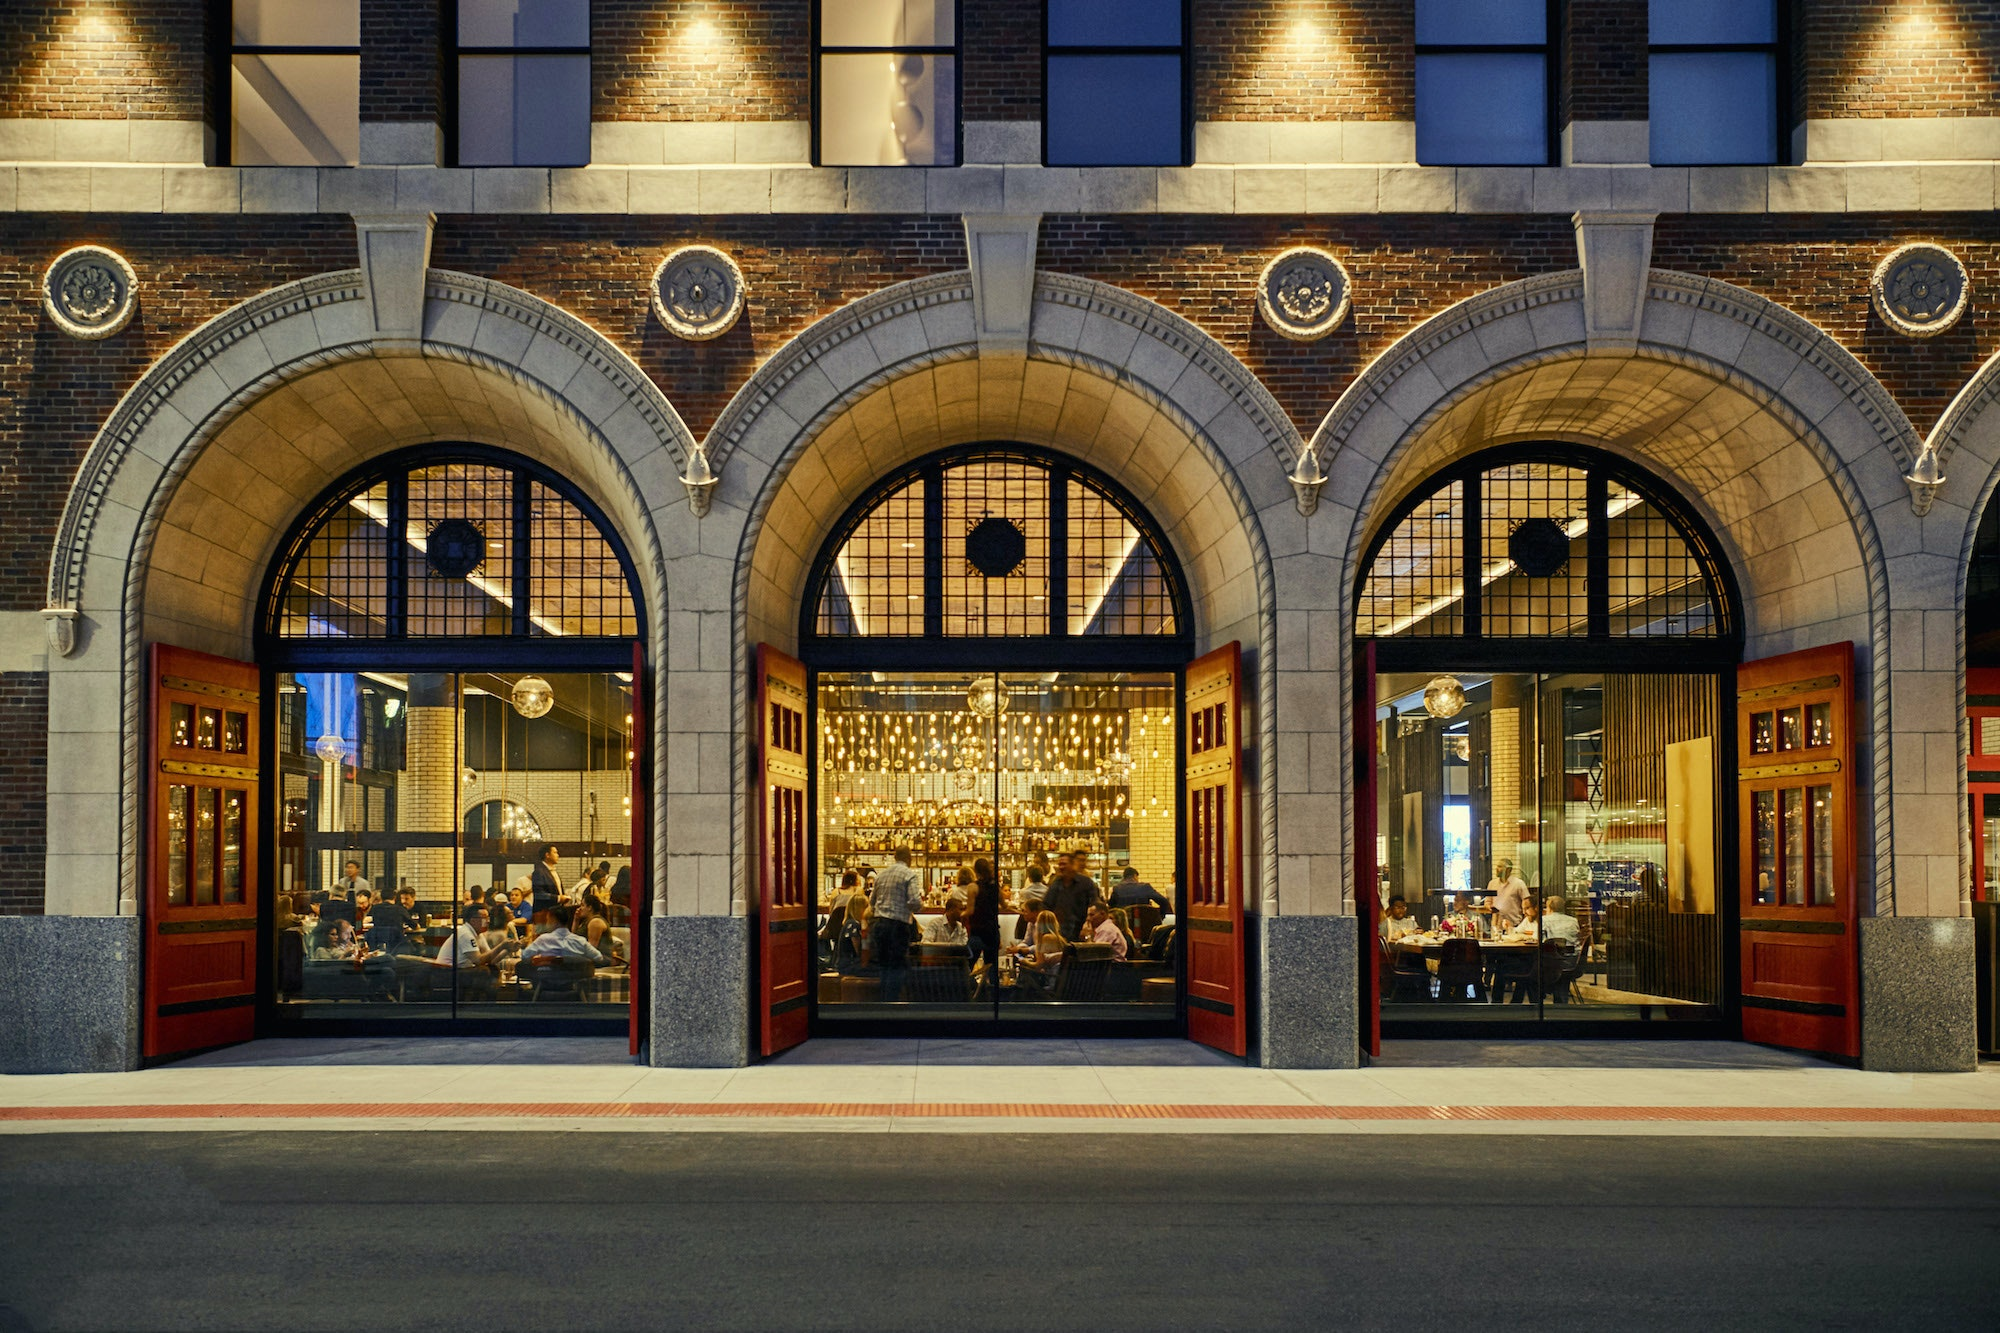 Detroit's Foundation Hotel opened in 2017 in the historic headquarters of Michigan's oldest fire department.